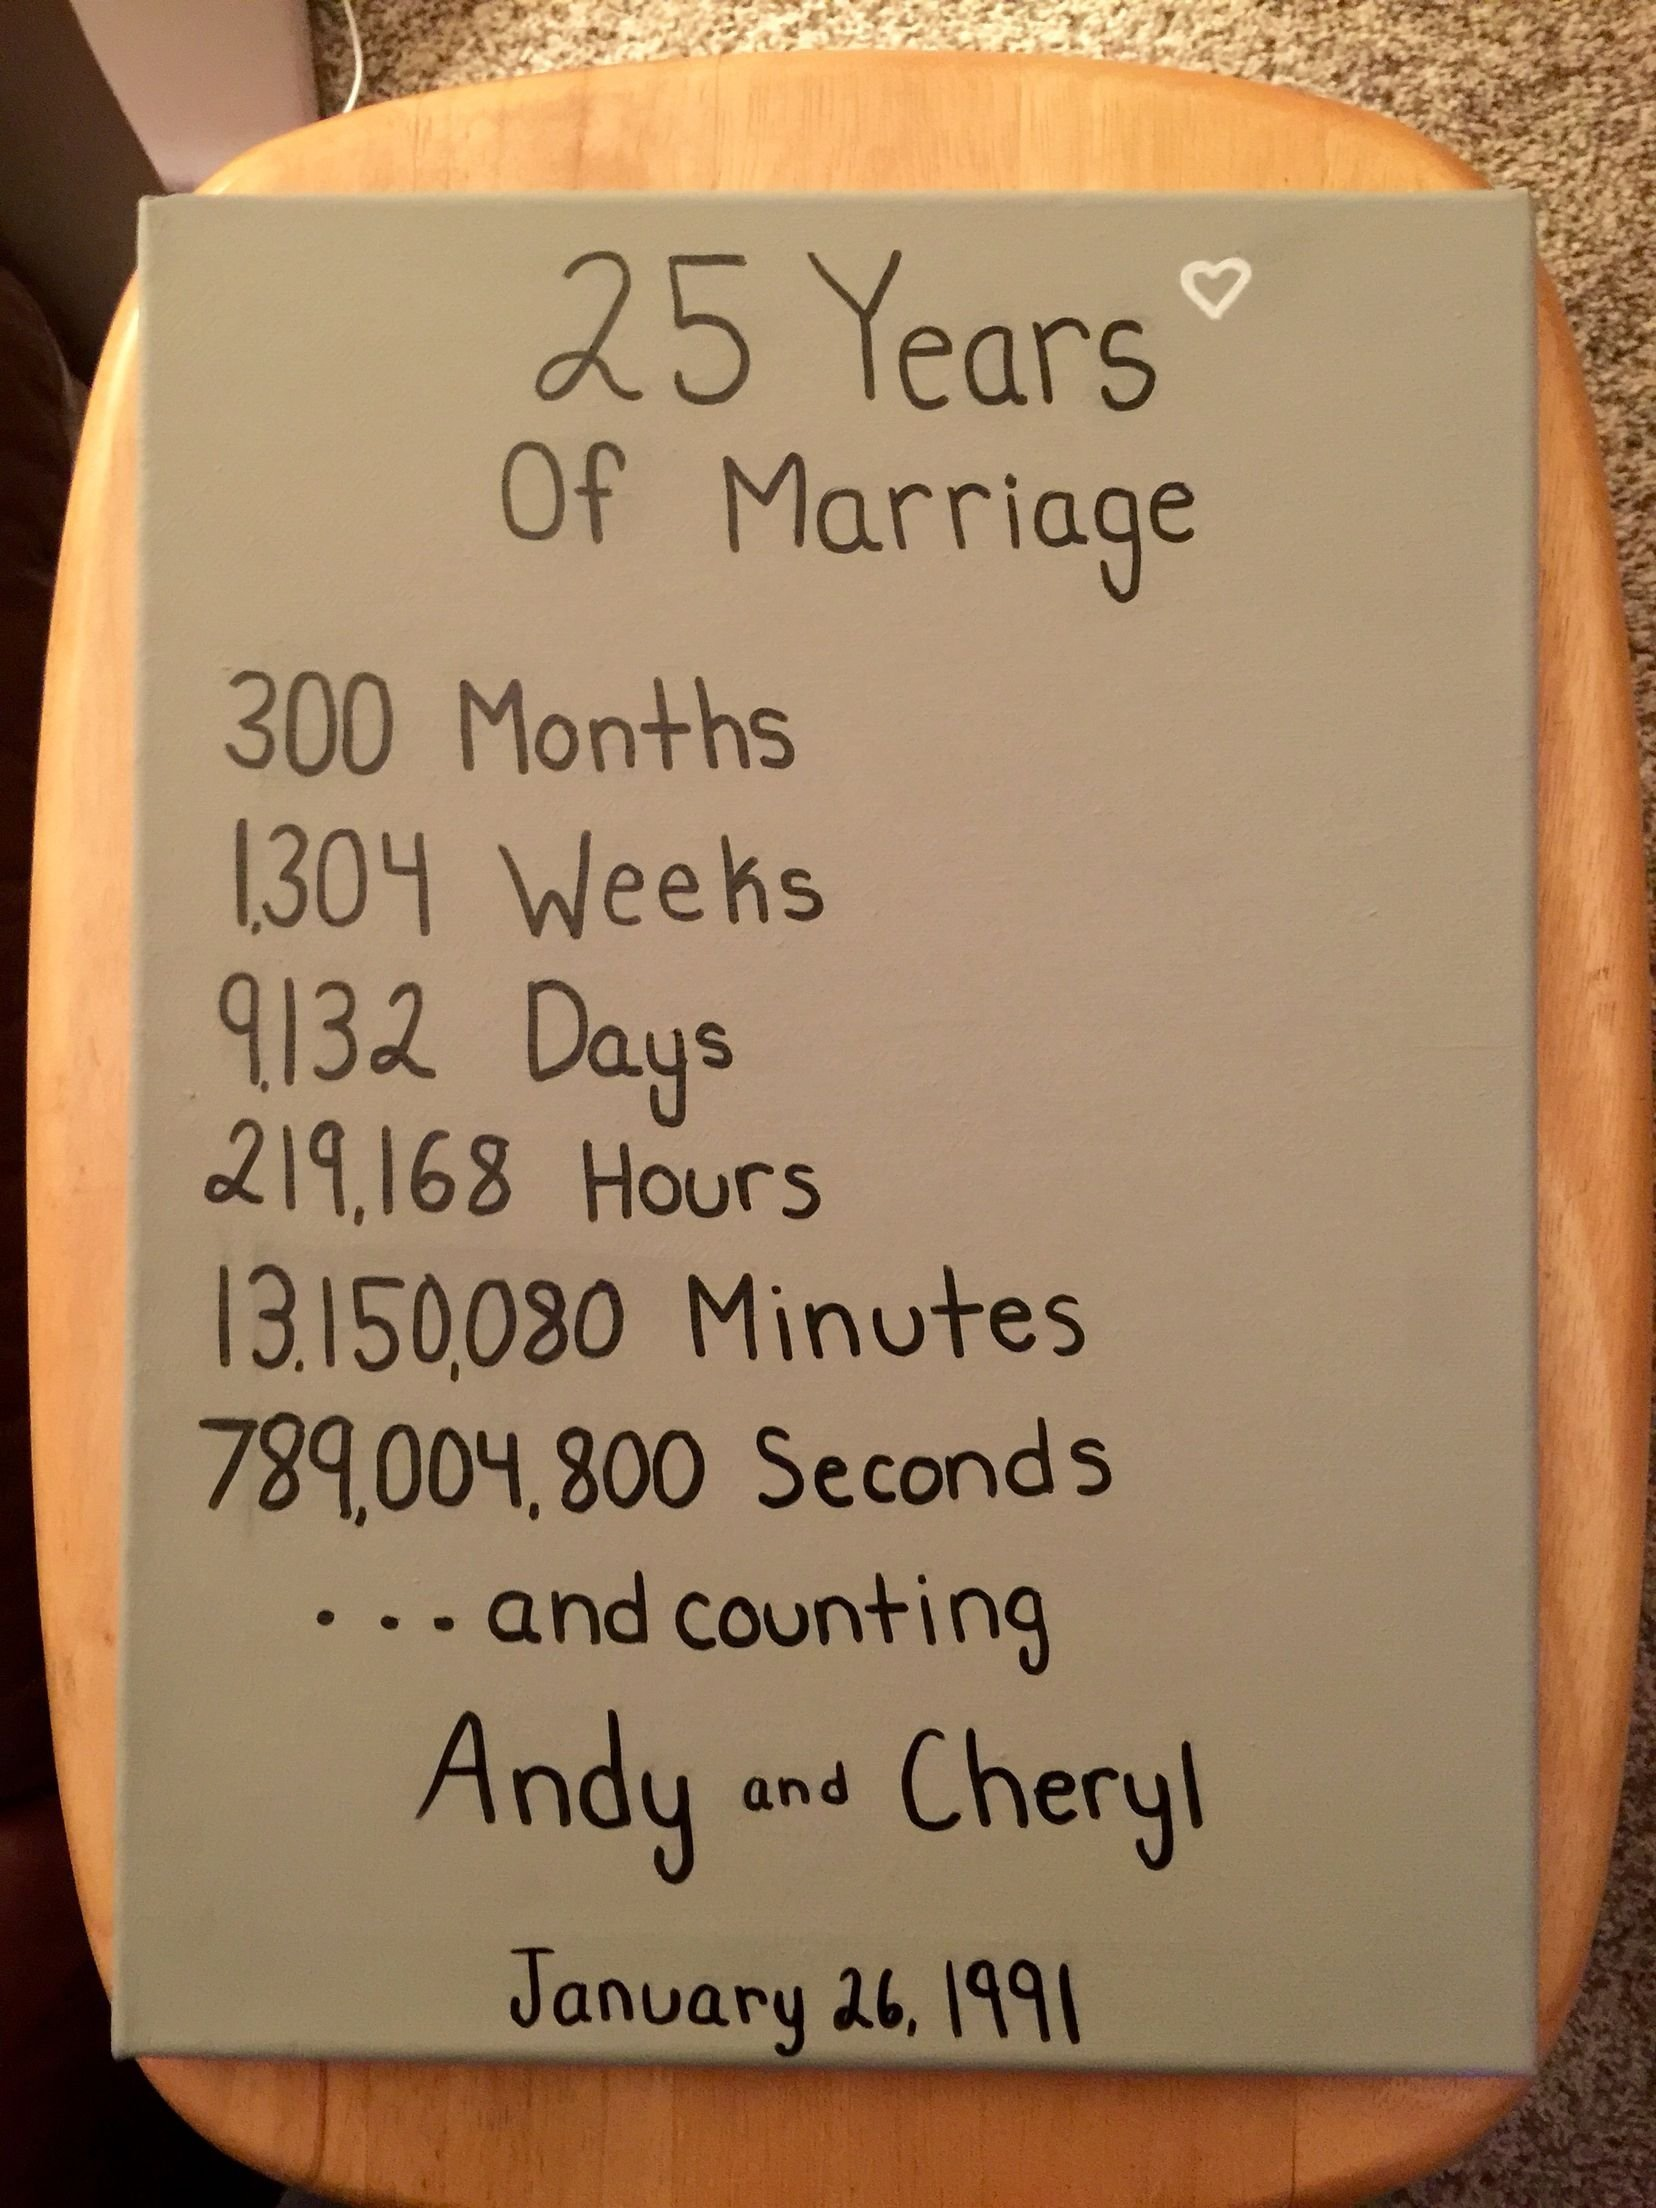 10 Stunning 25th Wedding Anniversary Gift Ideas For Couples 2021